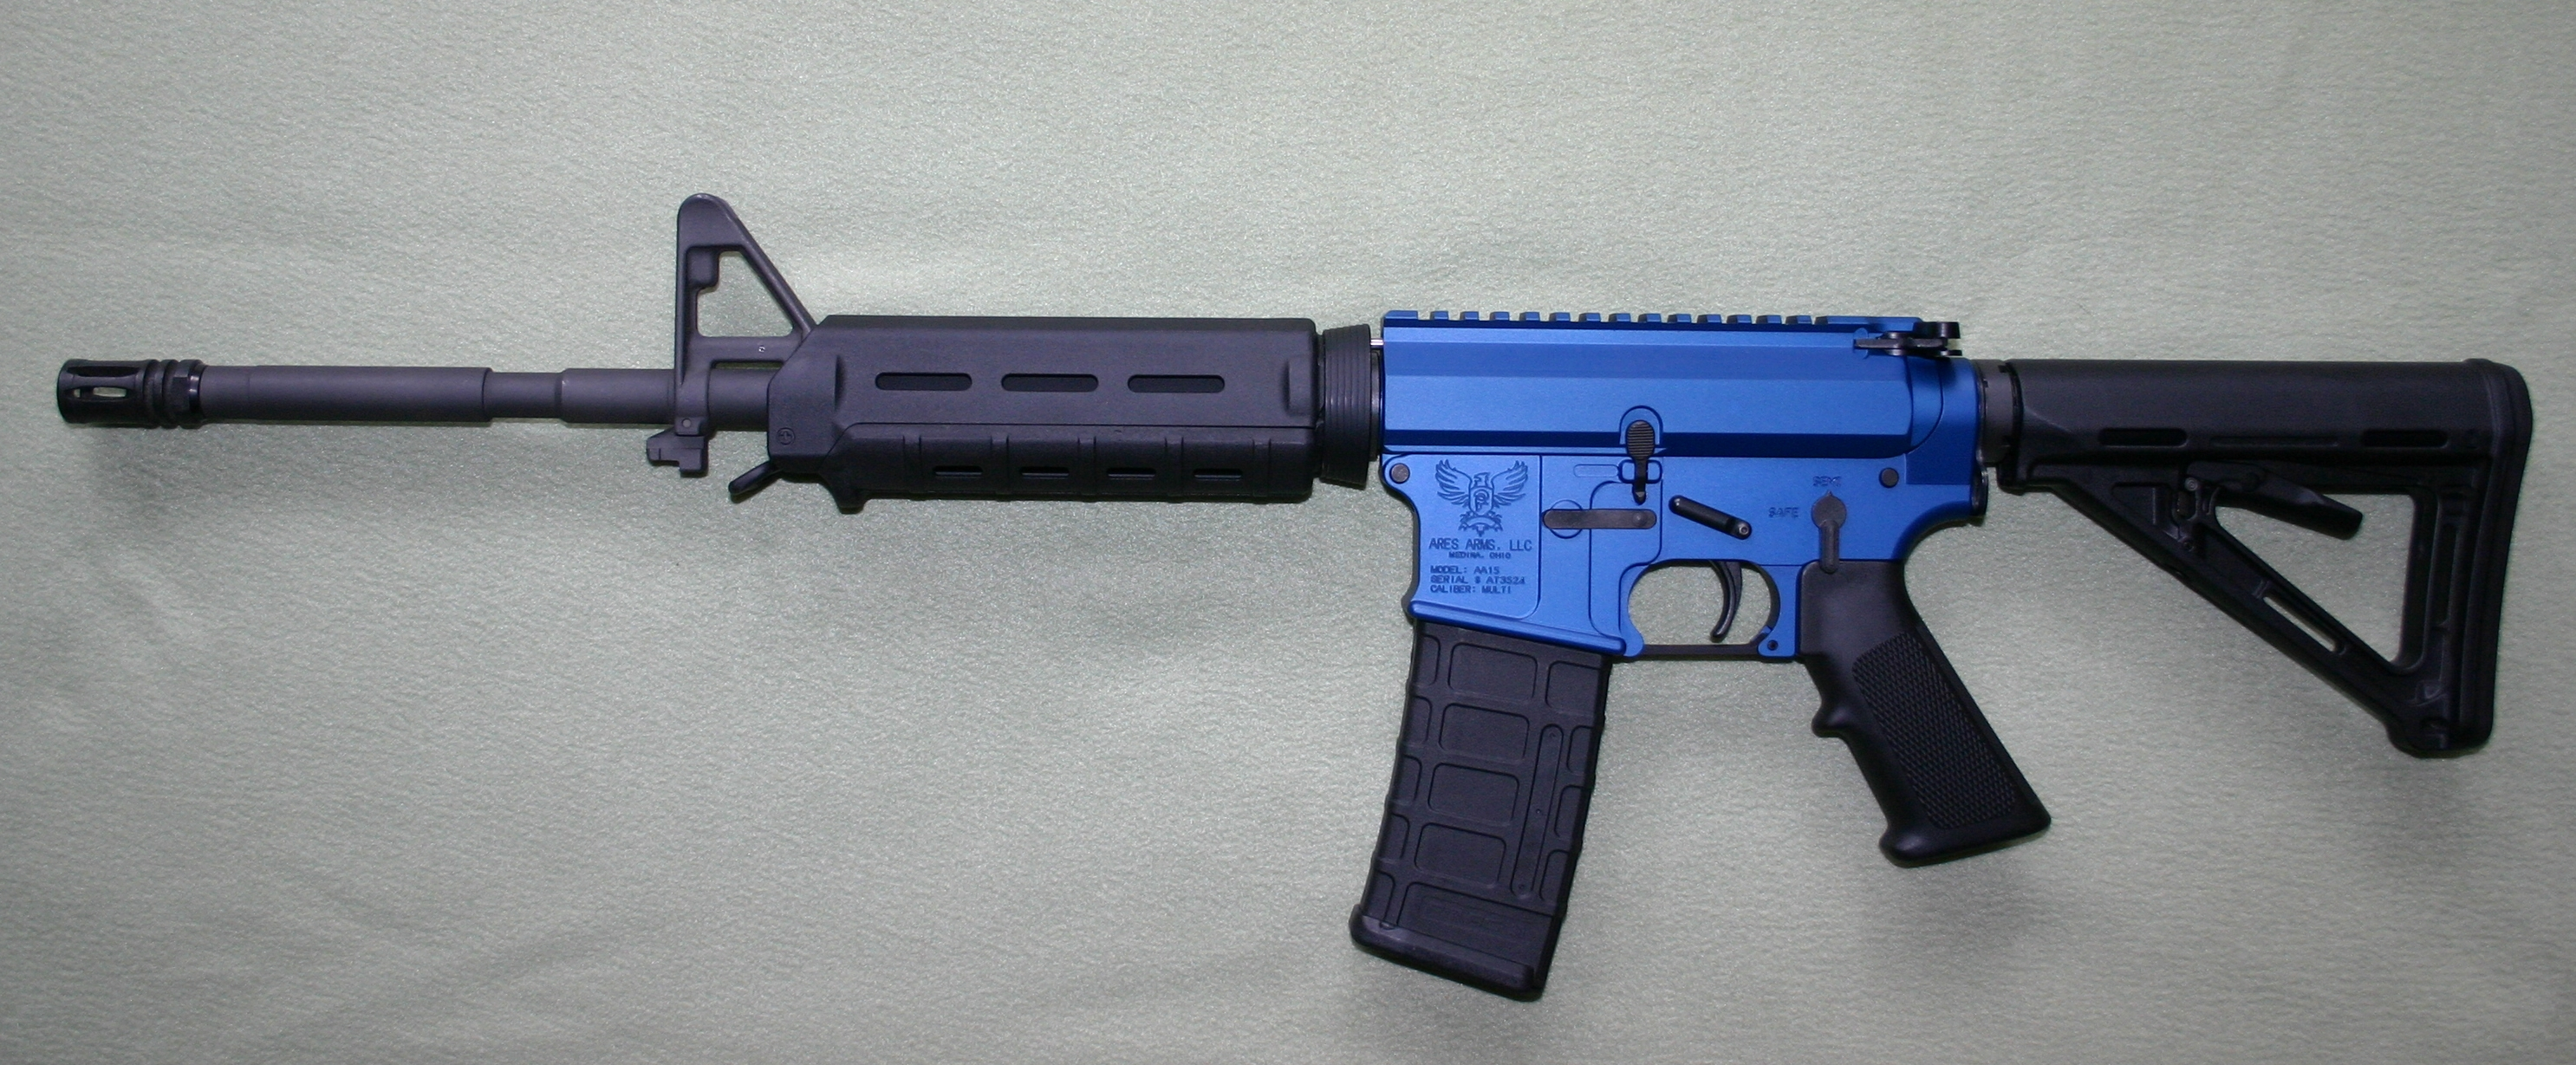 Ares Arms AA-15 Blue M4-Style - Magpul Stock and Handguards